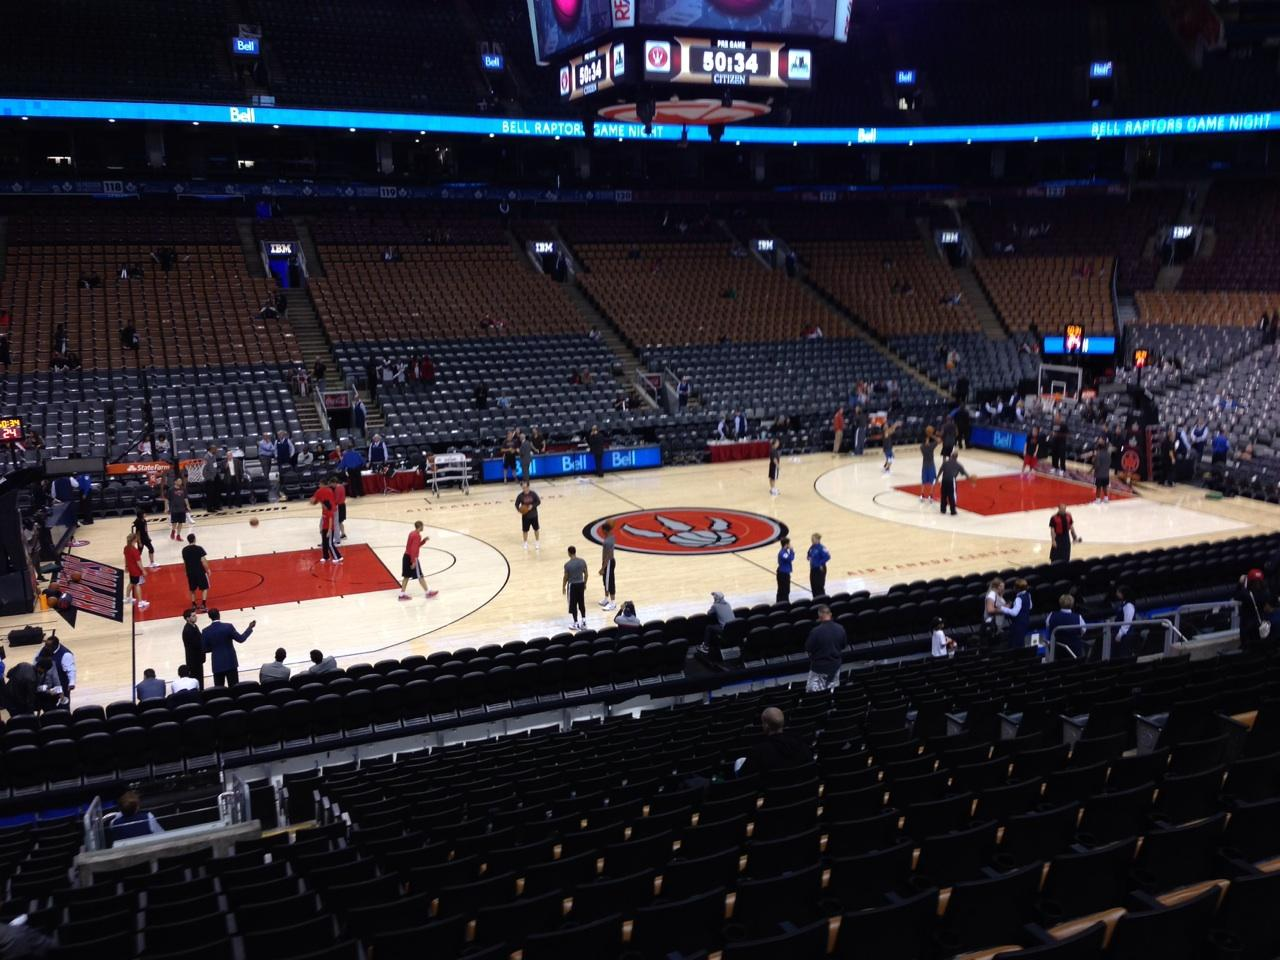 Scotiabank Arena Section 109 Row 20 Seat 11